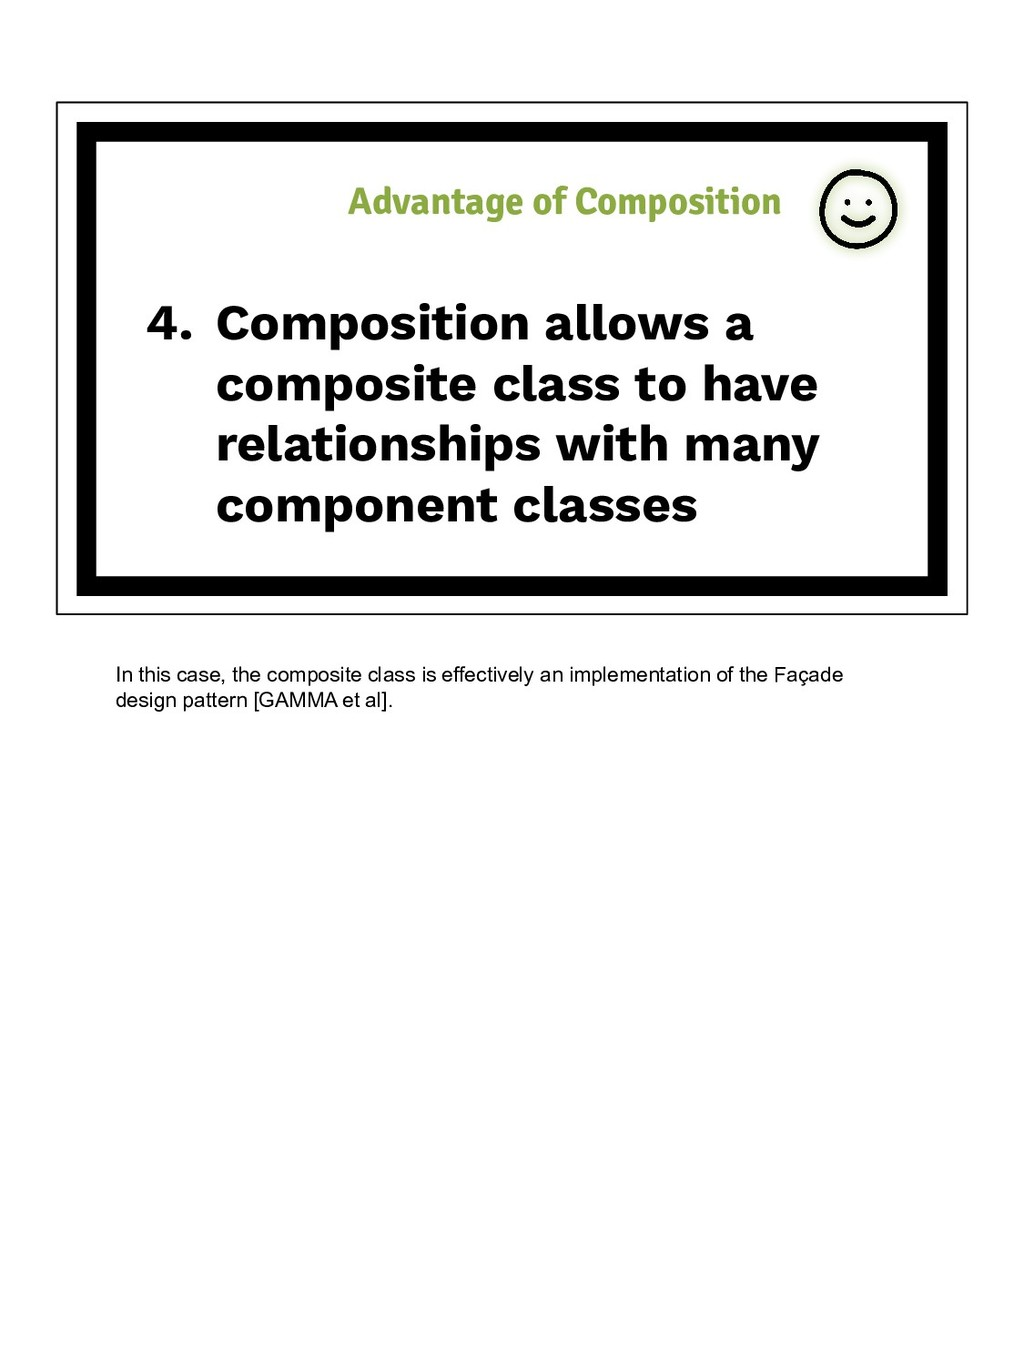 4. Composition allows a composite class to have...